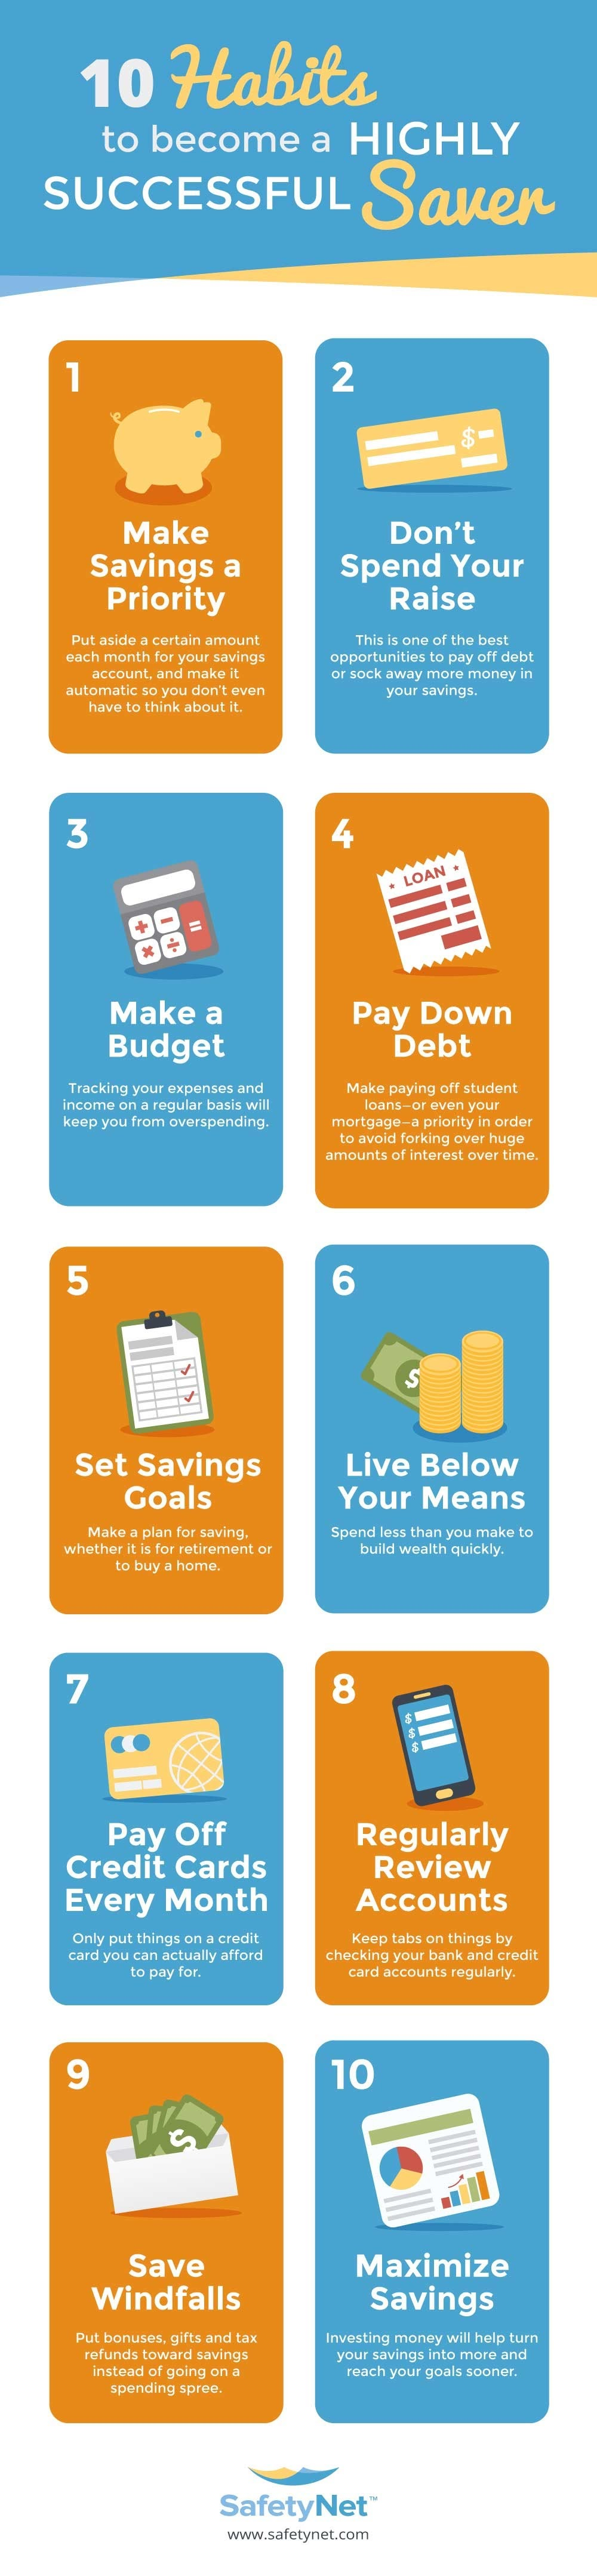 10 Habits To Become a Highly Successful Saver